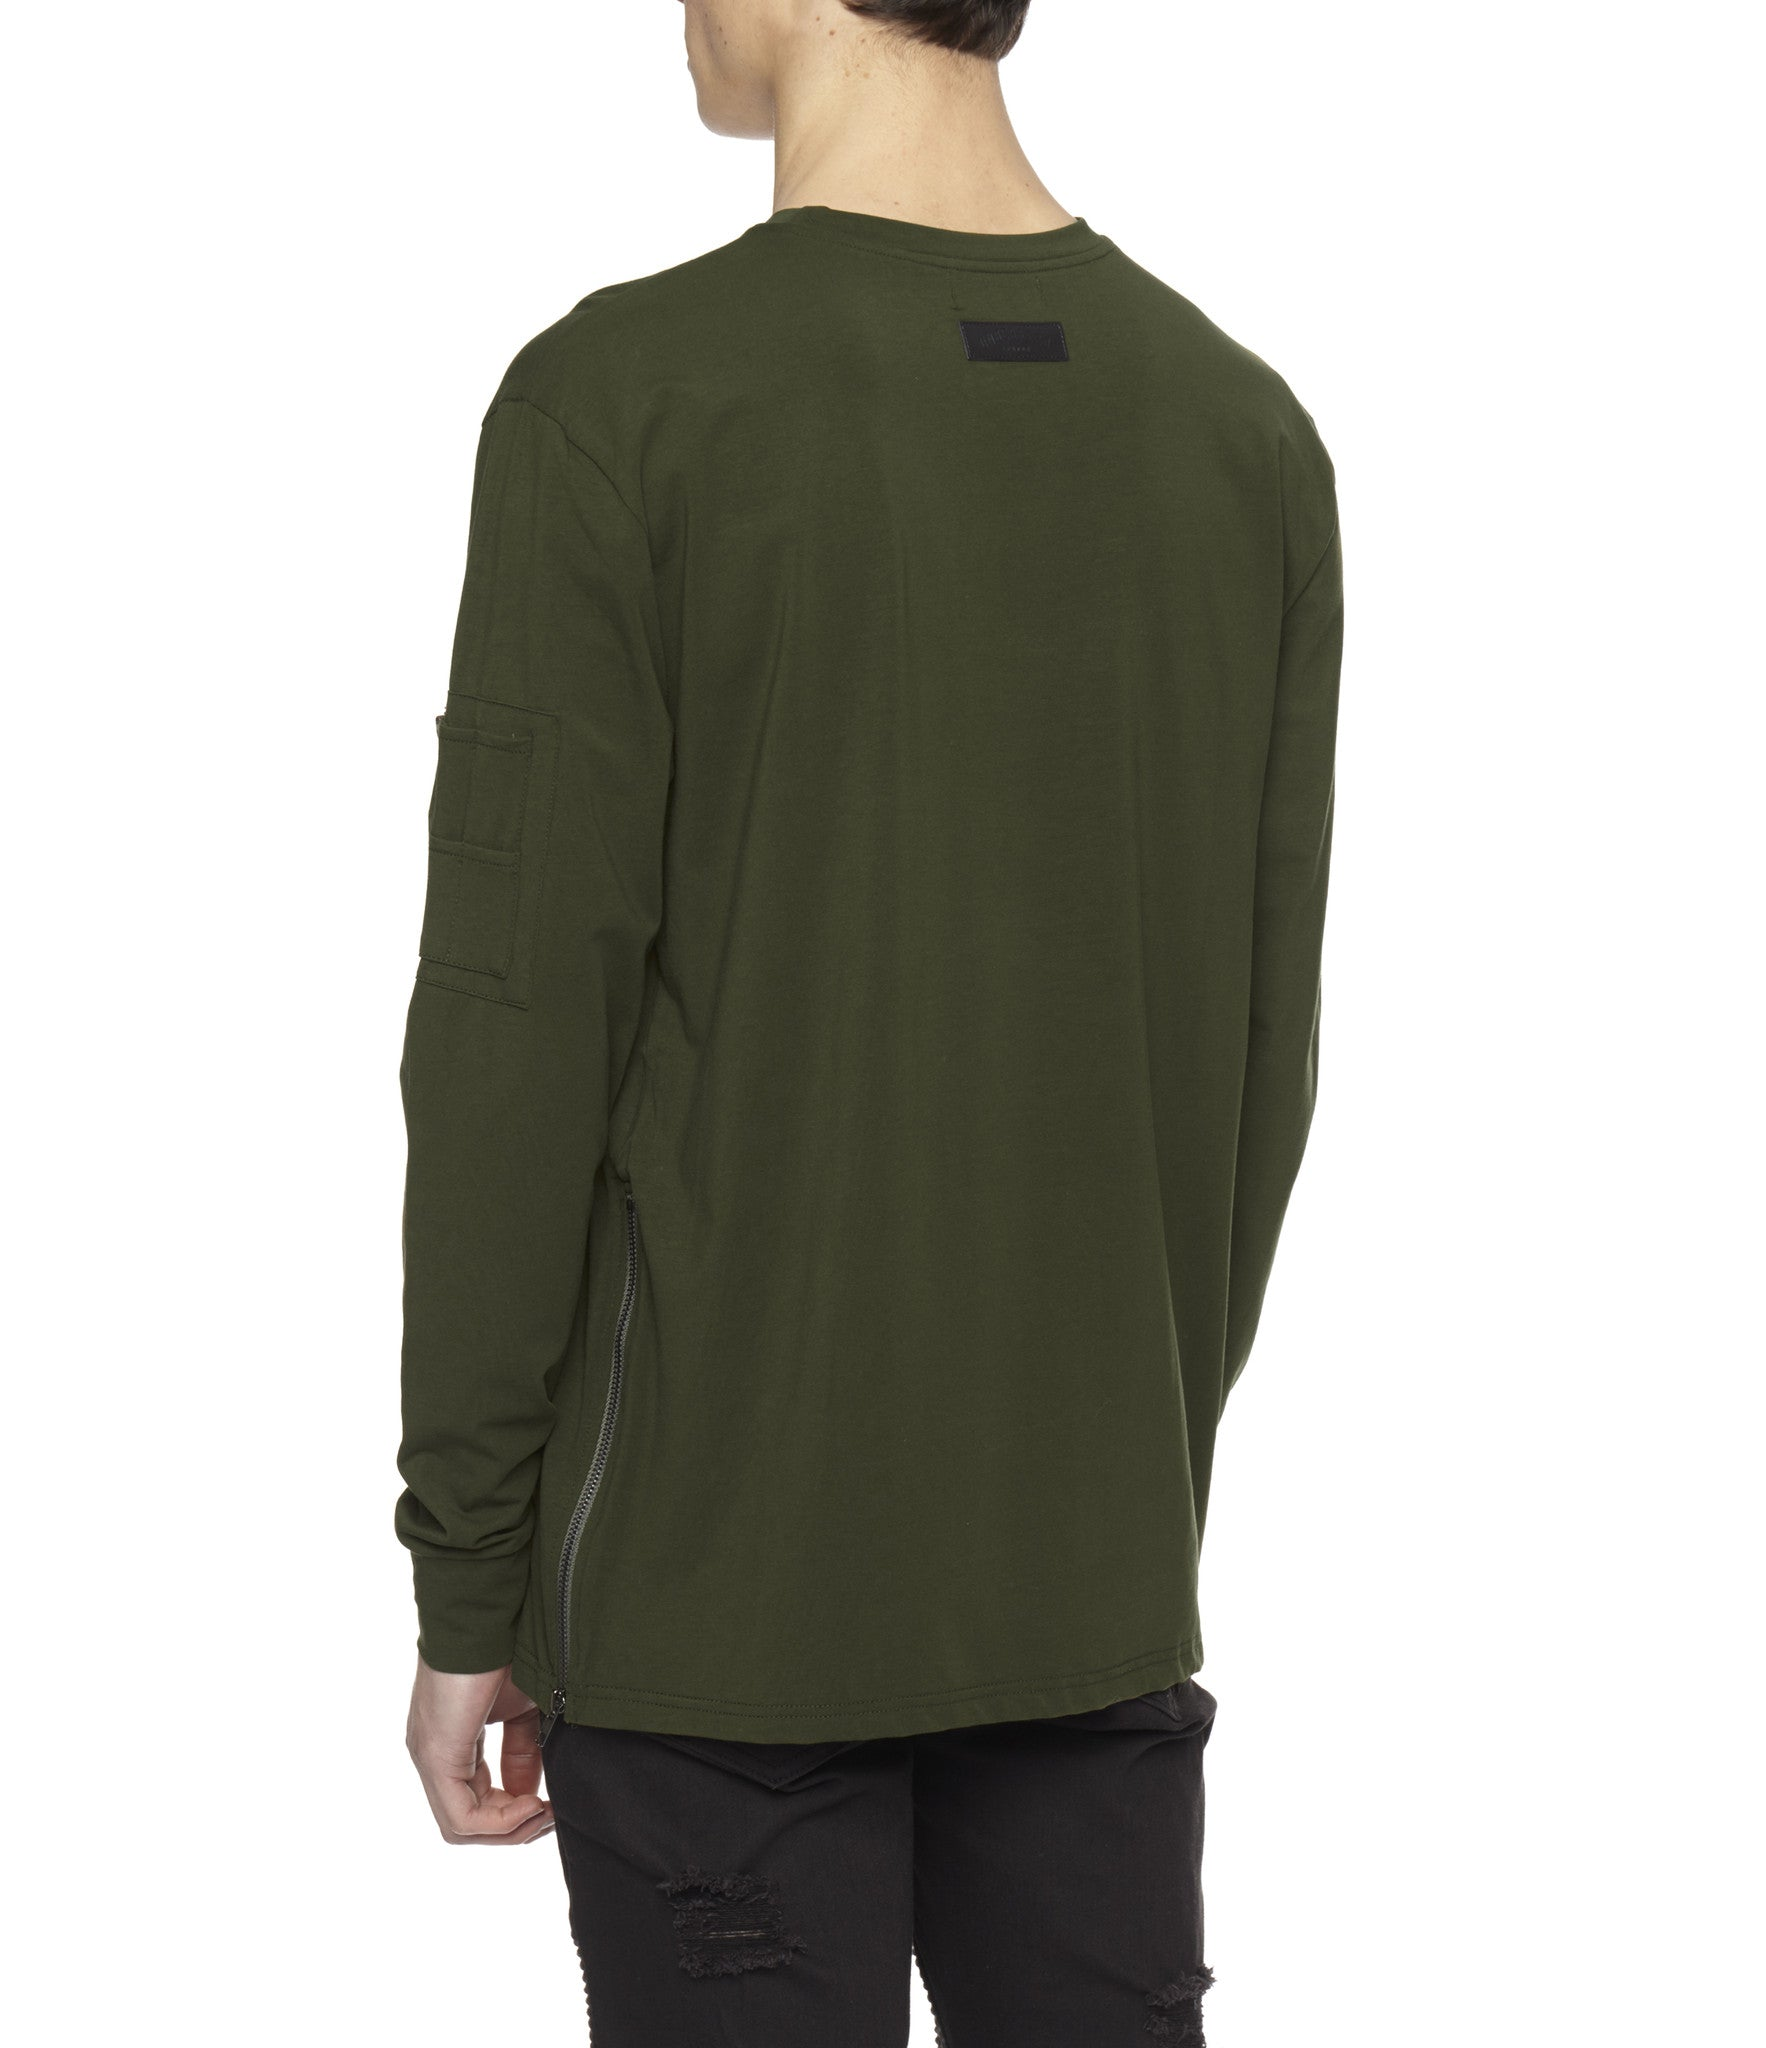 LS303 Utility Long-Sleeve Tee - Olive Green - underated london - underatedco - 6